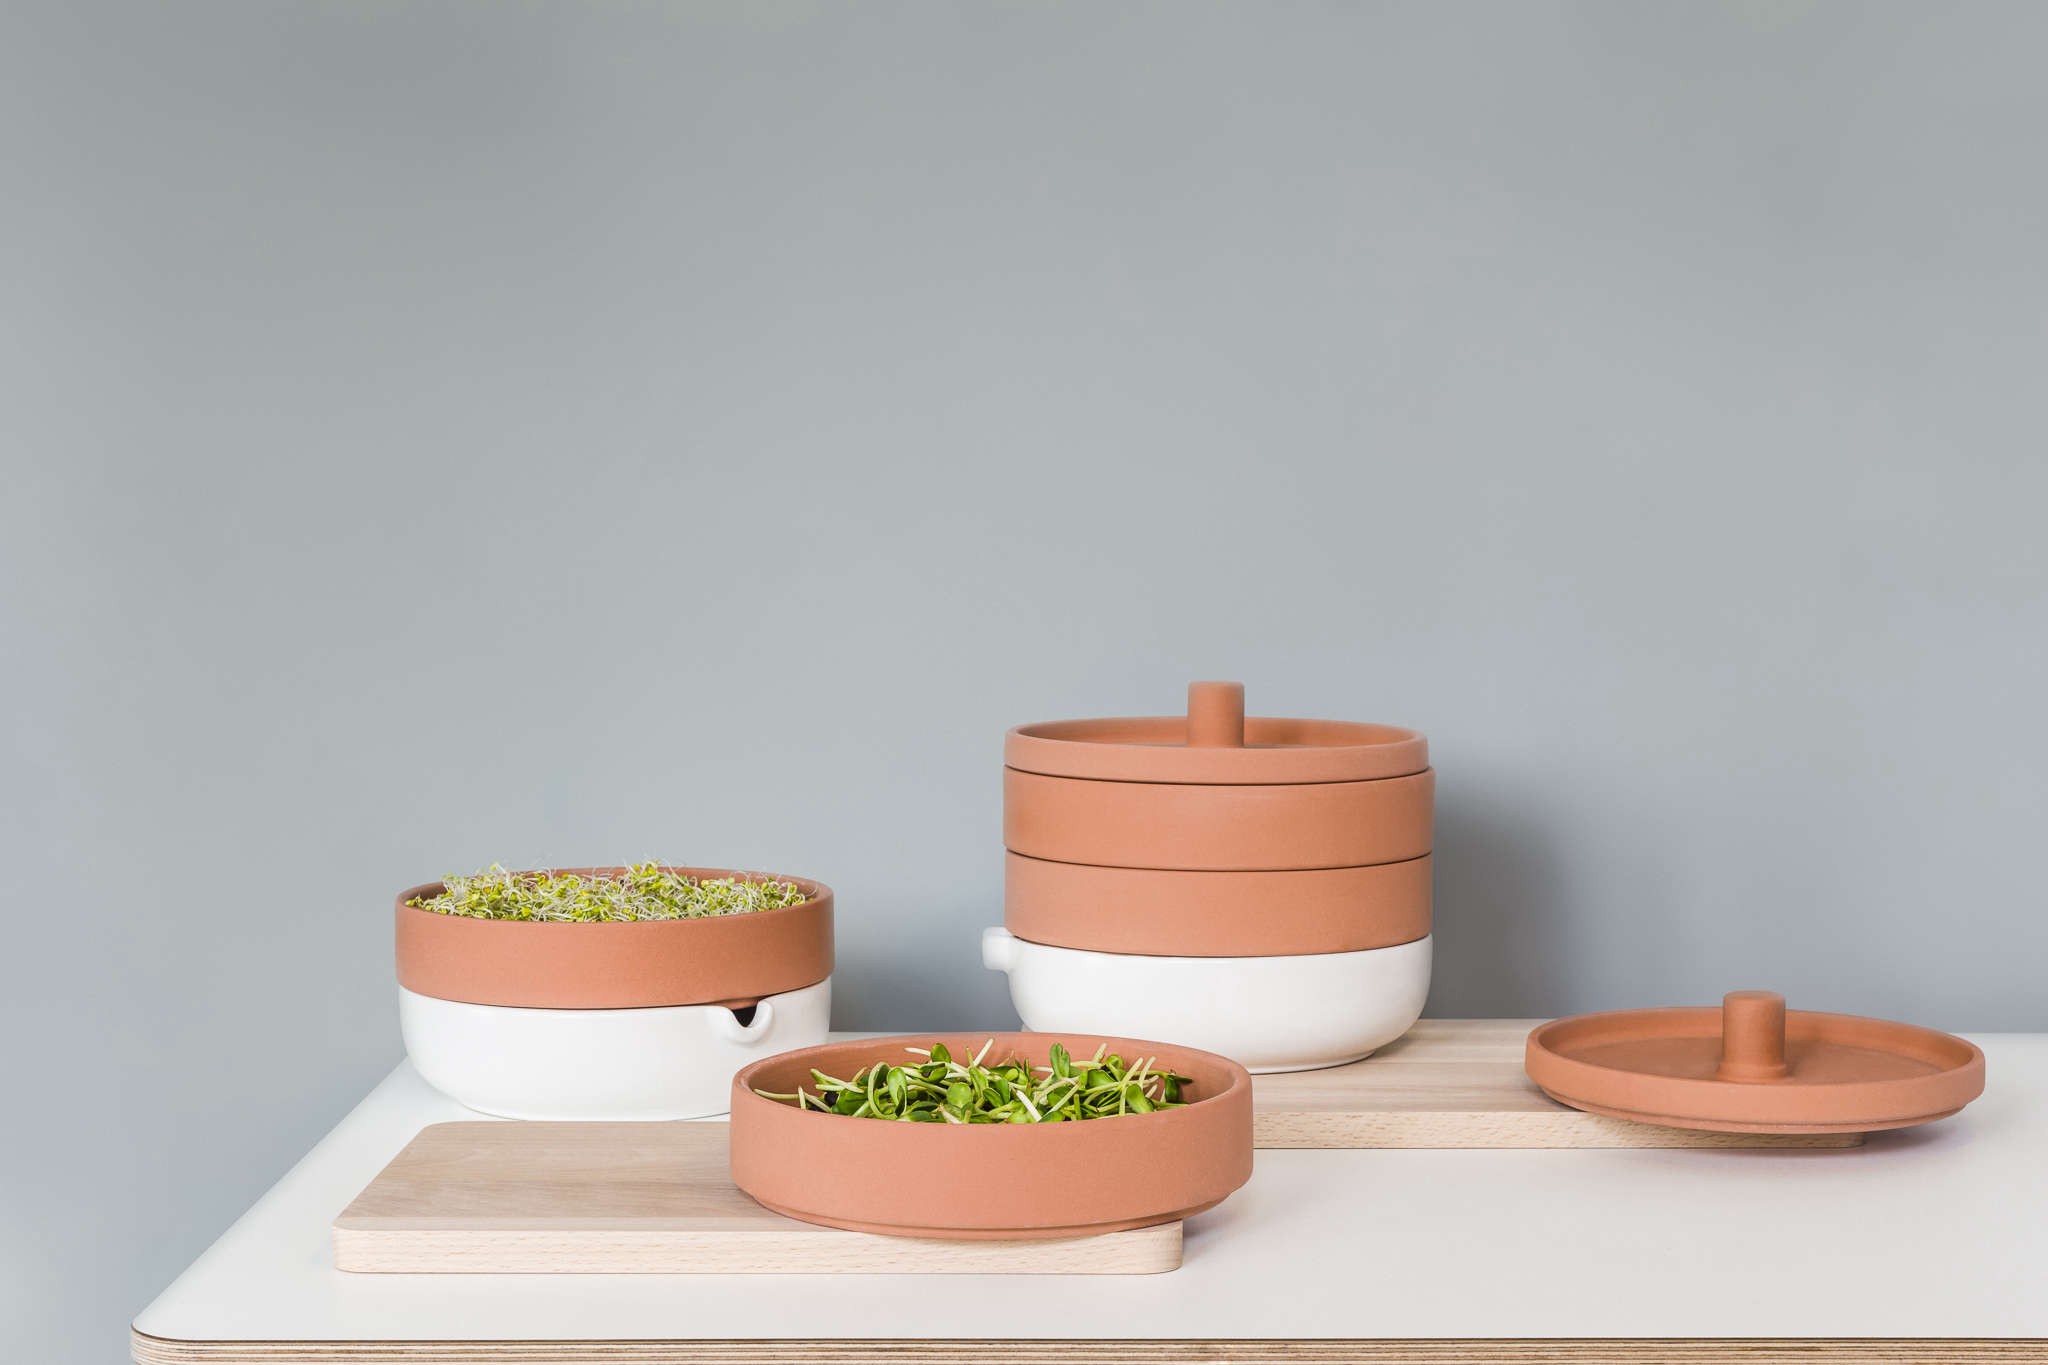 Kitchen Garden Sprouter New From Ikea A Terra Cotta Sprouter To Grow Microgreens